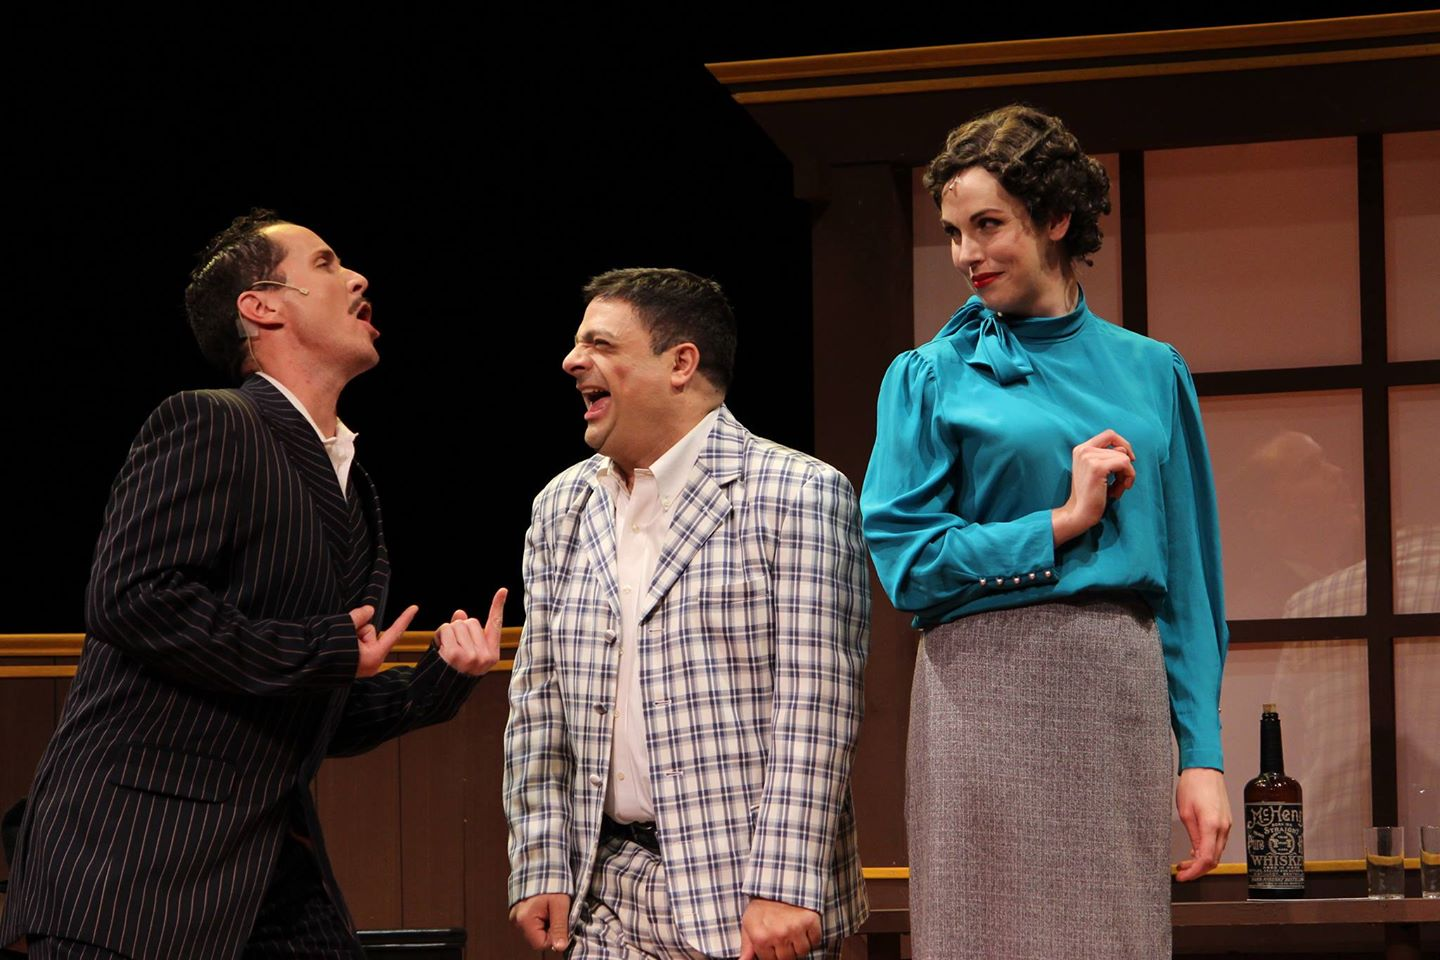 Theater Works. 2014. National Pastime. Ian Christiansen, Scott Hyder, Sarah Wolter. Photo by Brett Aiken.